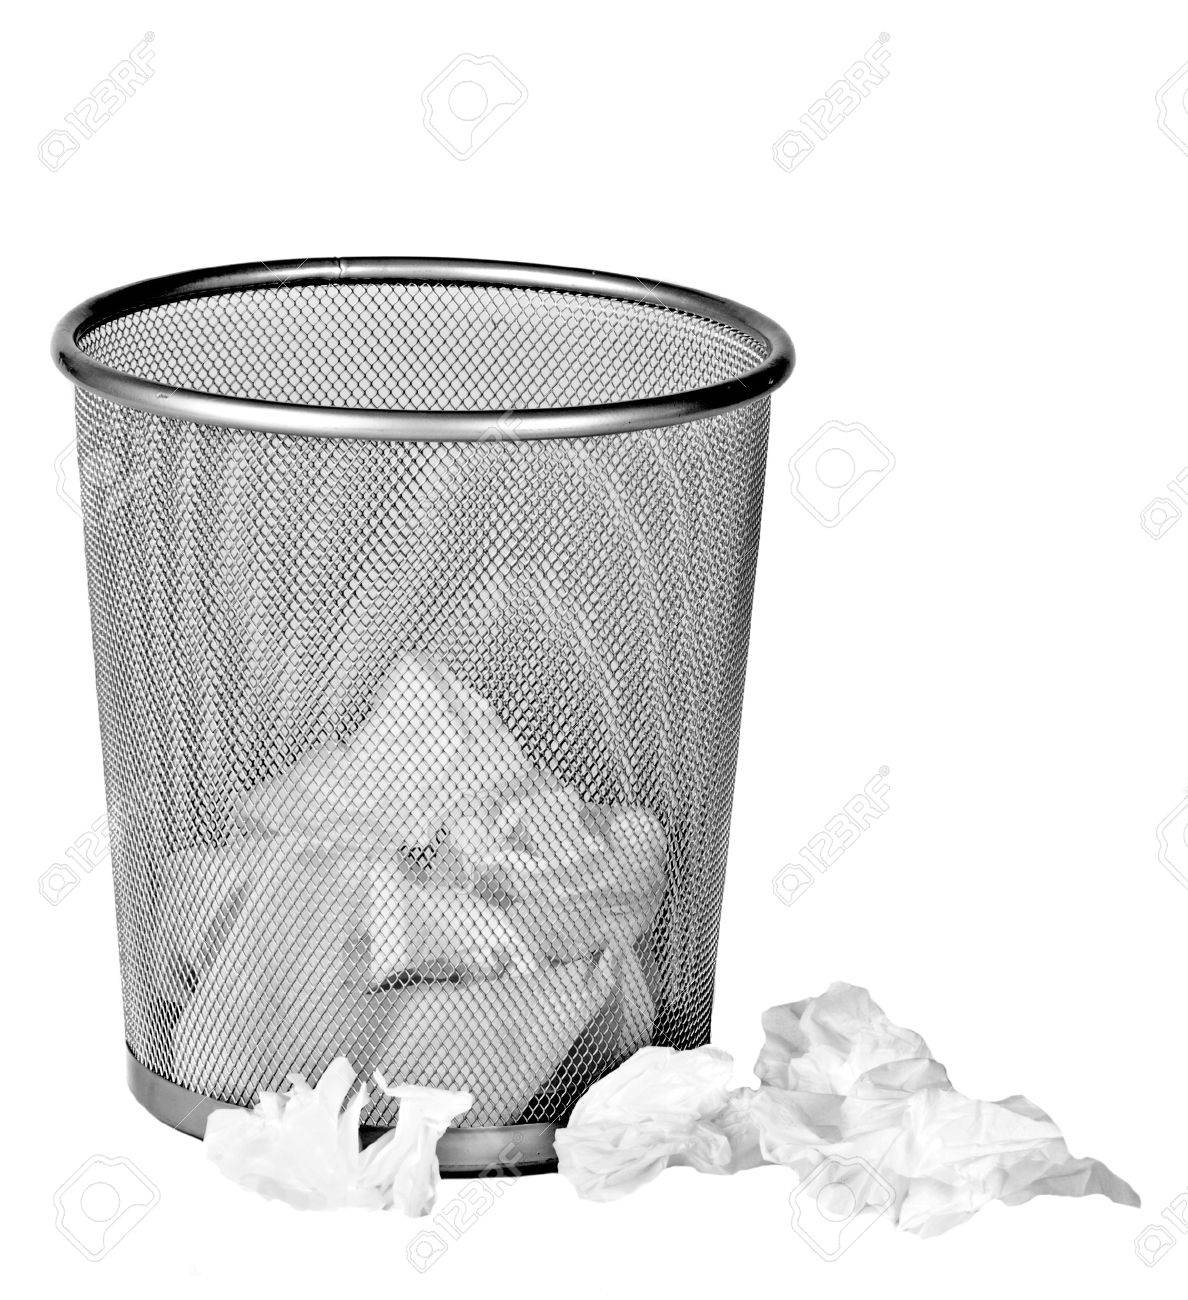 Wire Metal Bin With Paper Tissues On White Background Stock Photo ...